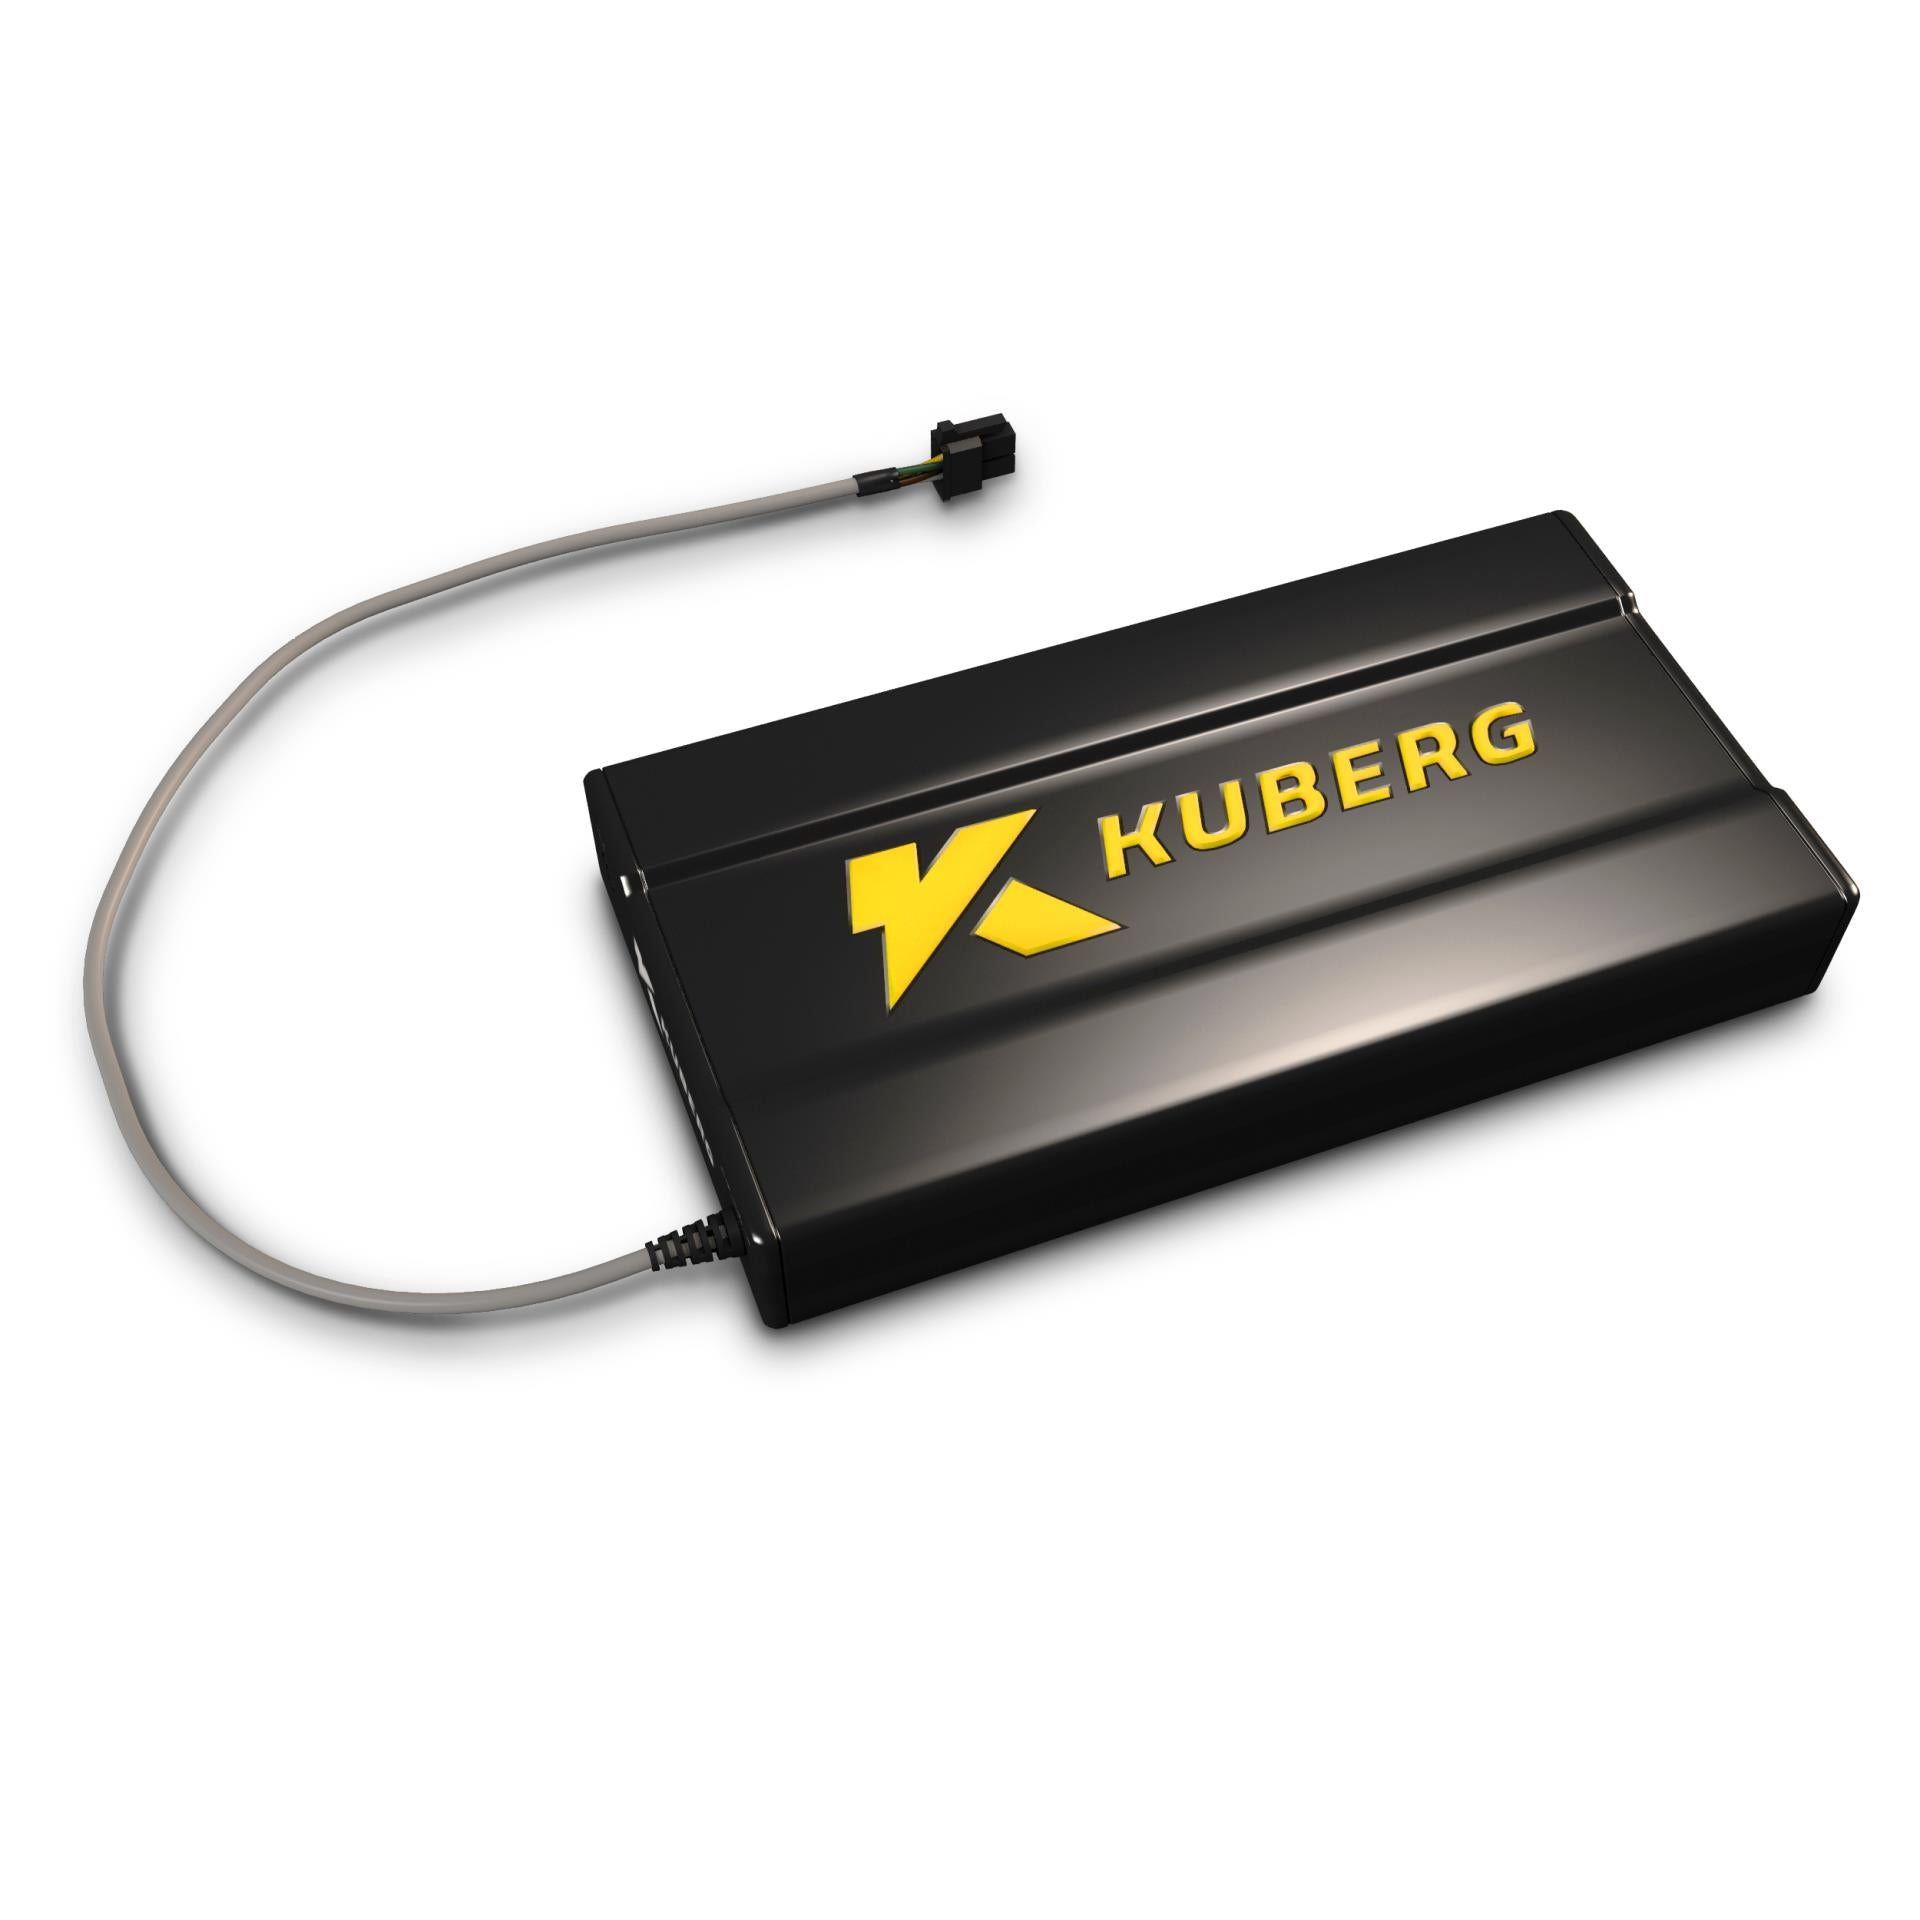 Kuberg Wifi Dongle - All Kuberg models - Electric Dirt Bikes